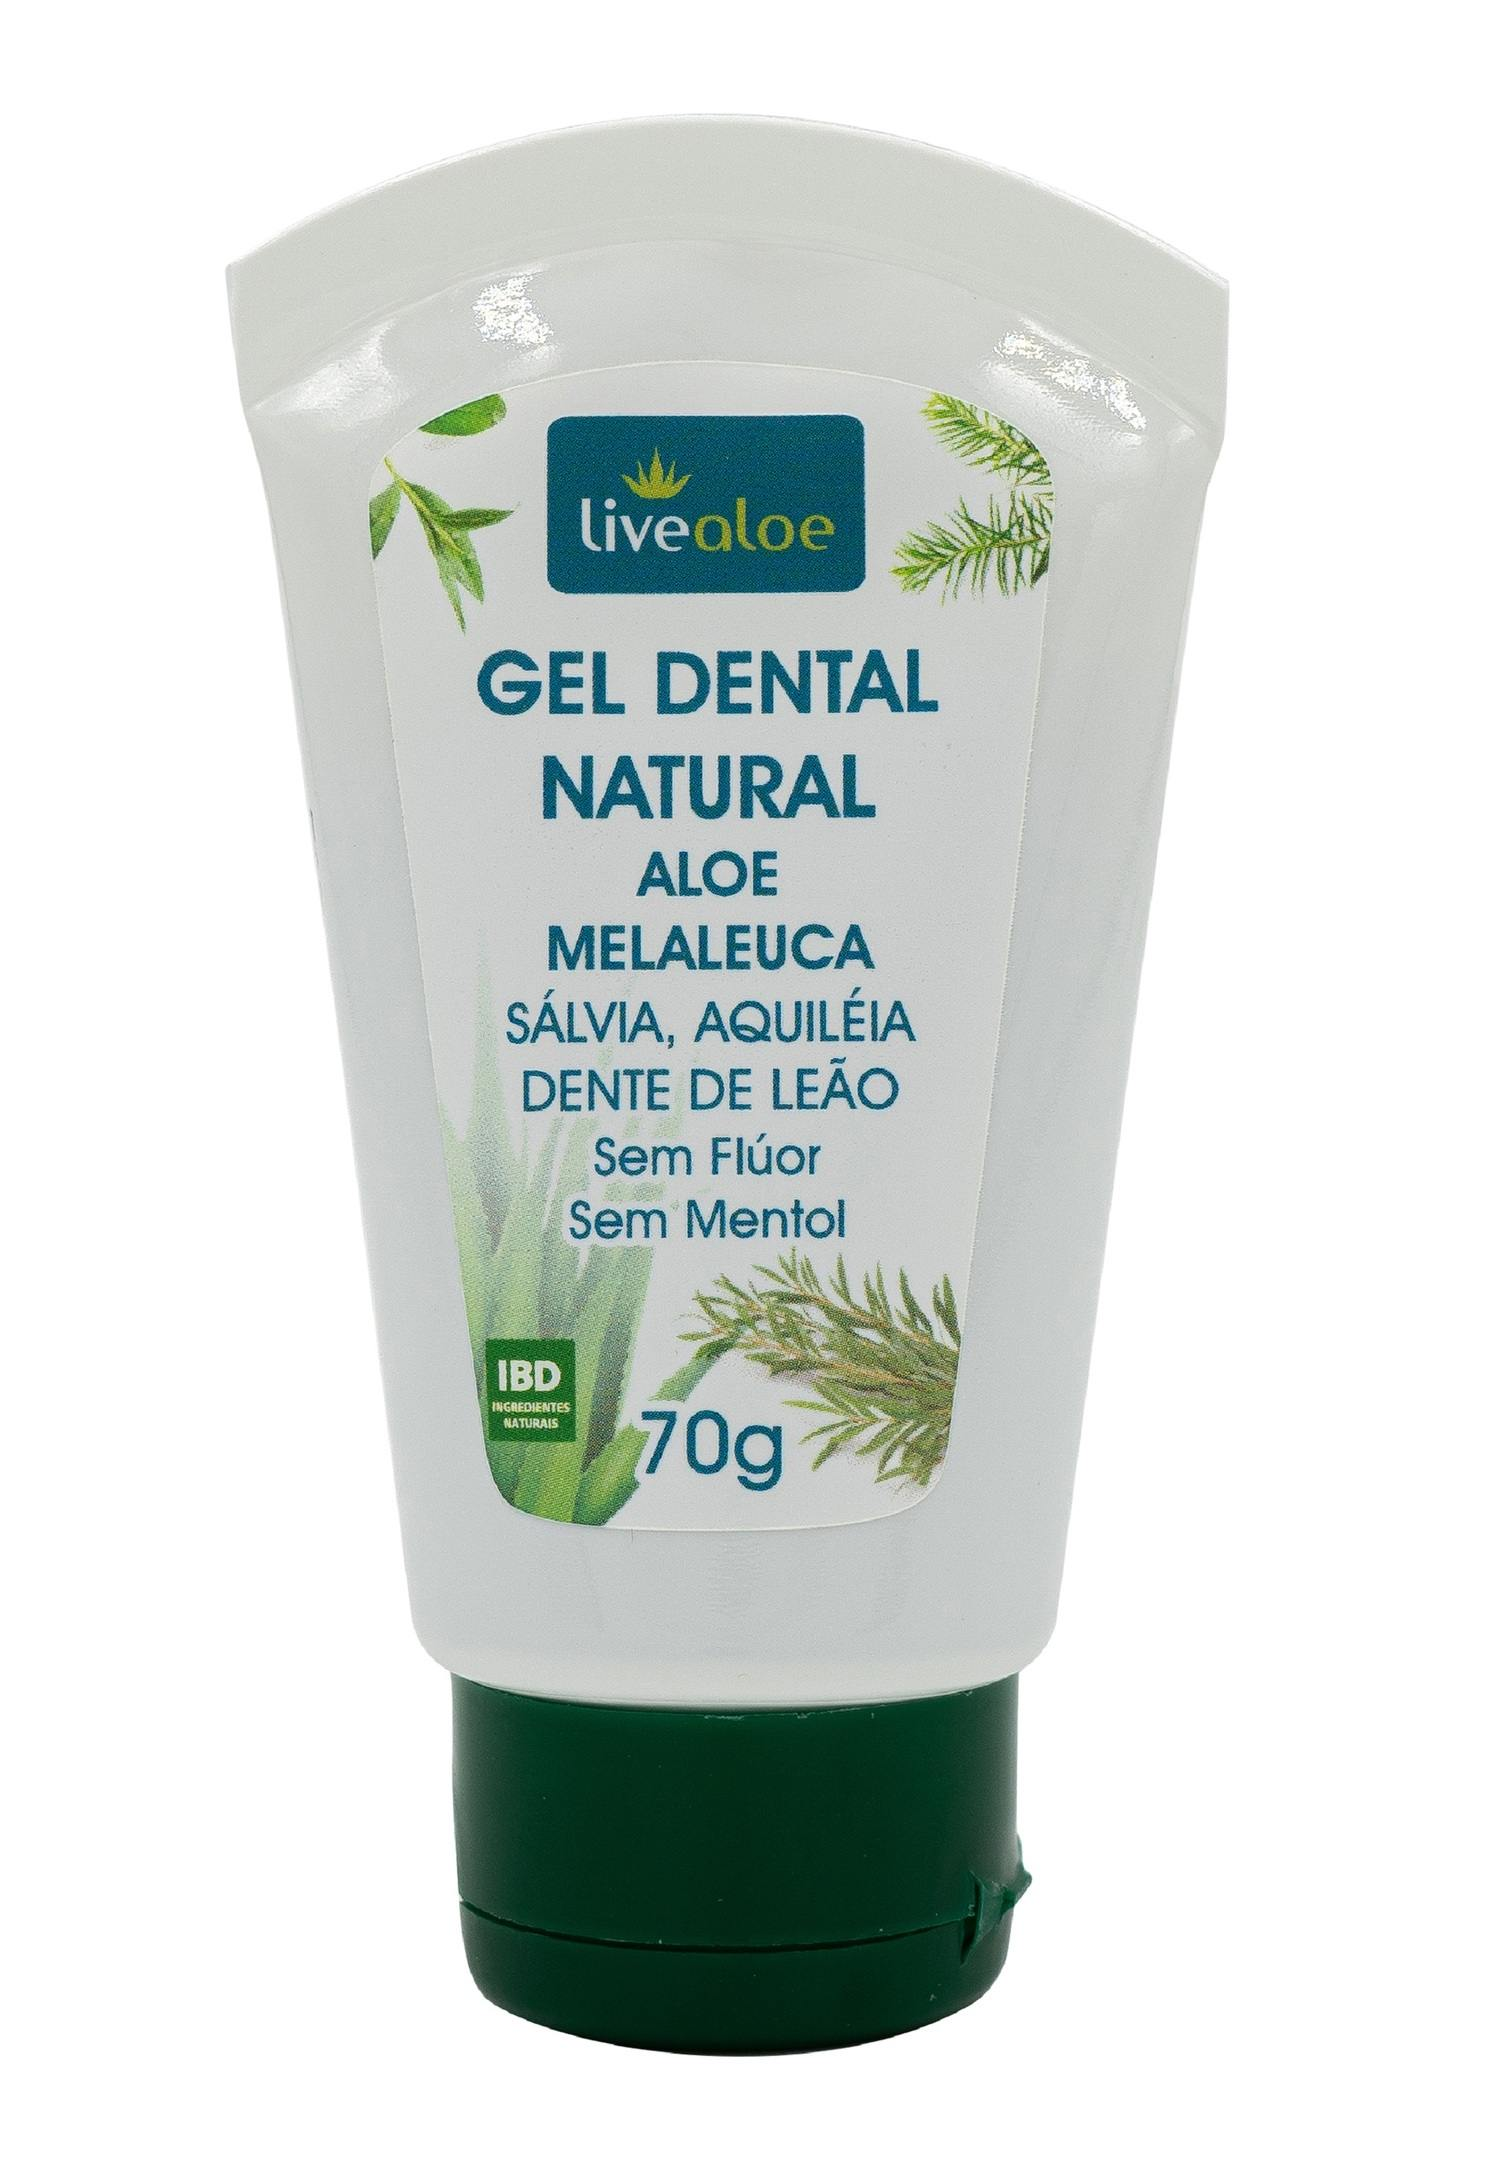 Gel Dental Aloe Melaleuca